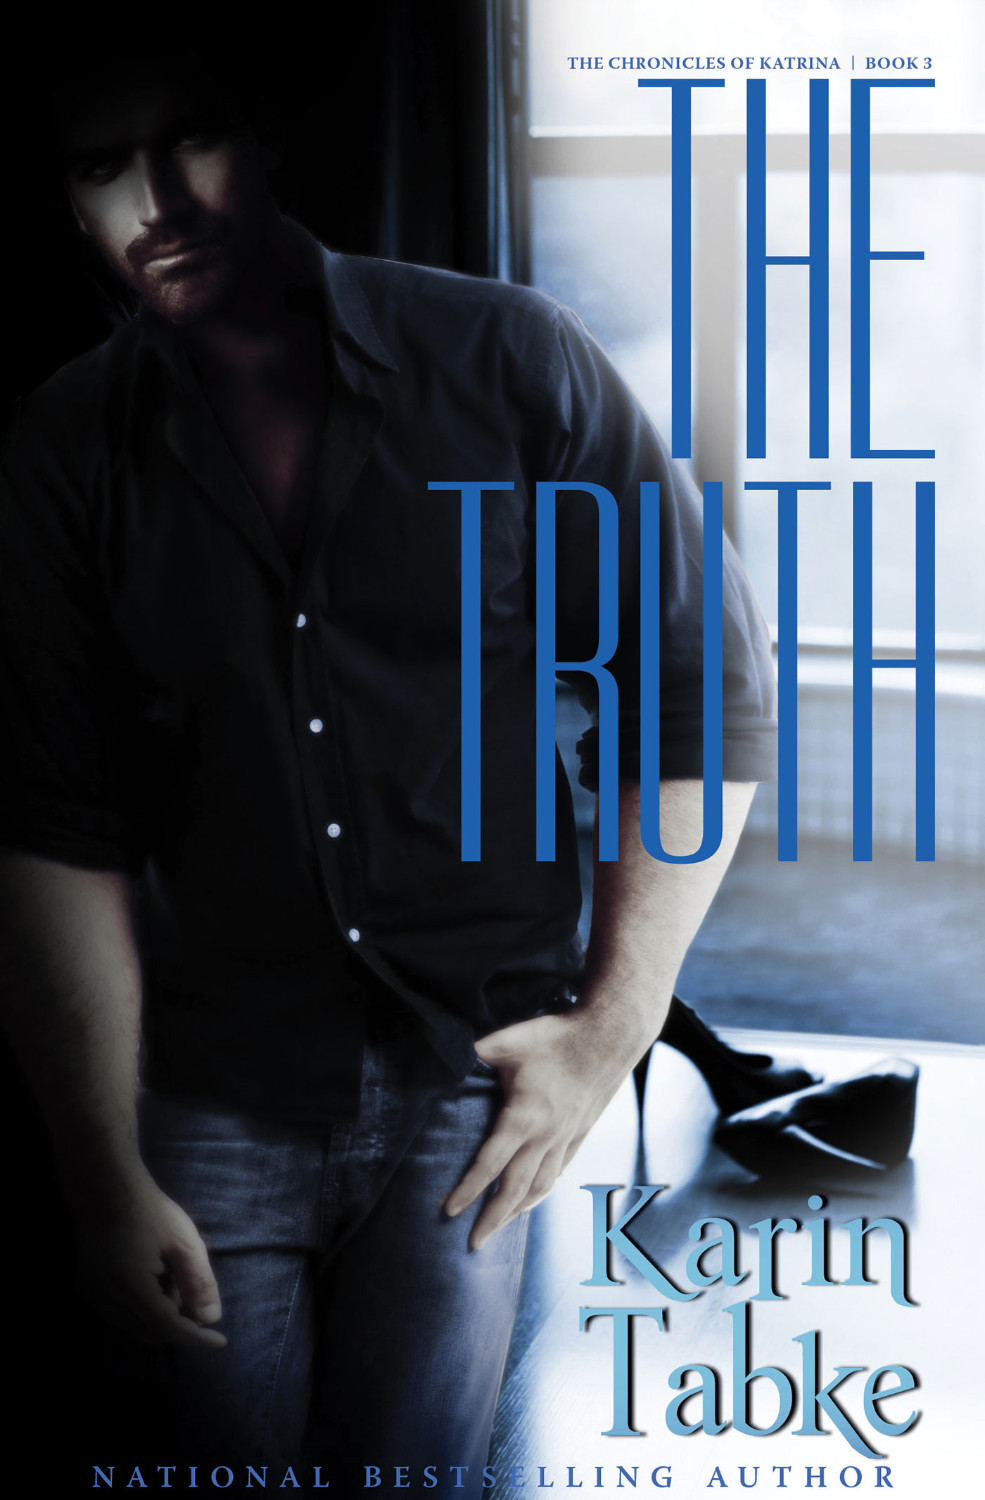 KT_TCK_TheTruth_Book3_Final_Web_1400x2133_514-81.jpg